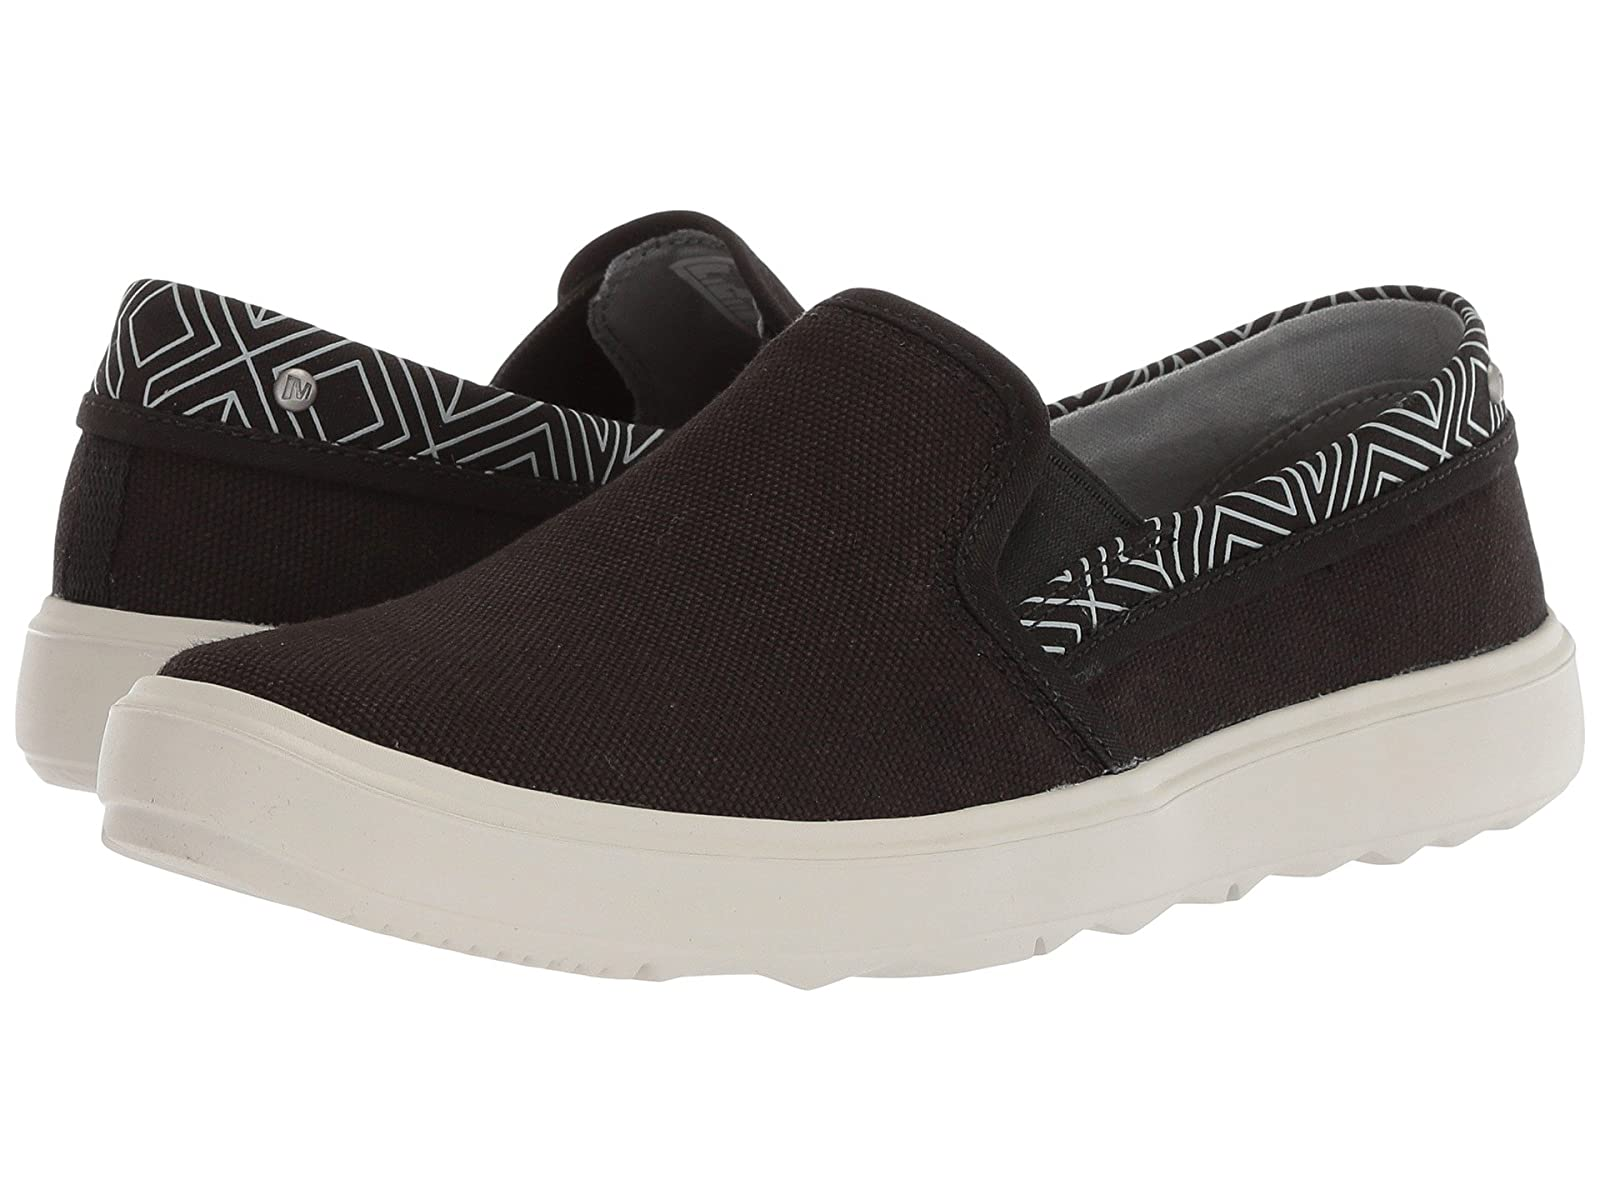 Merrell Around Town City Moc Canvas Canvas Moc 93f5b7